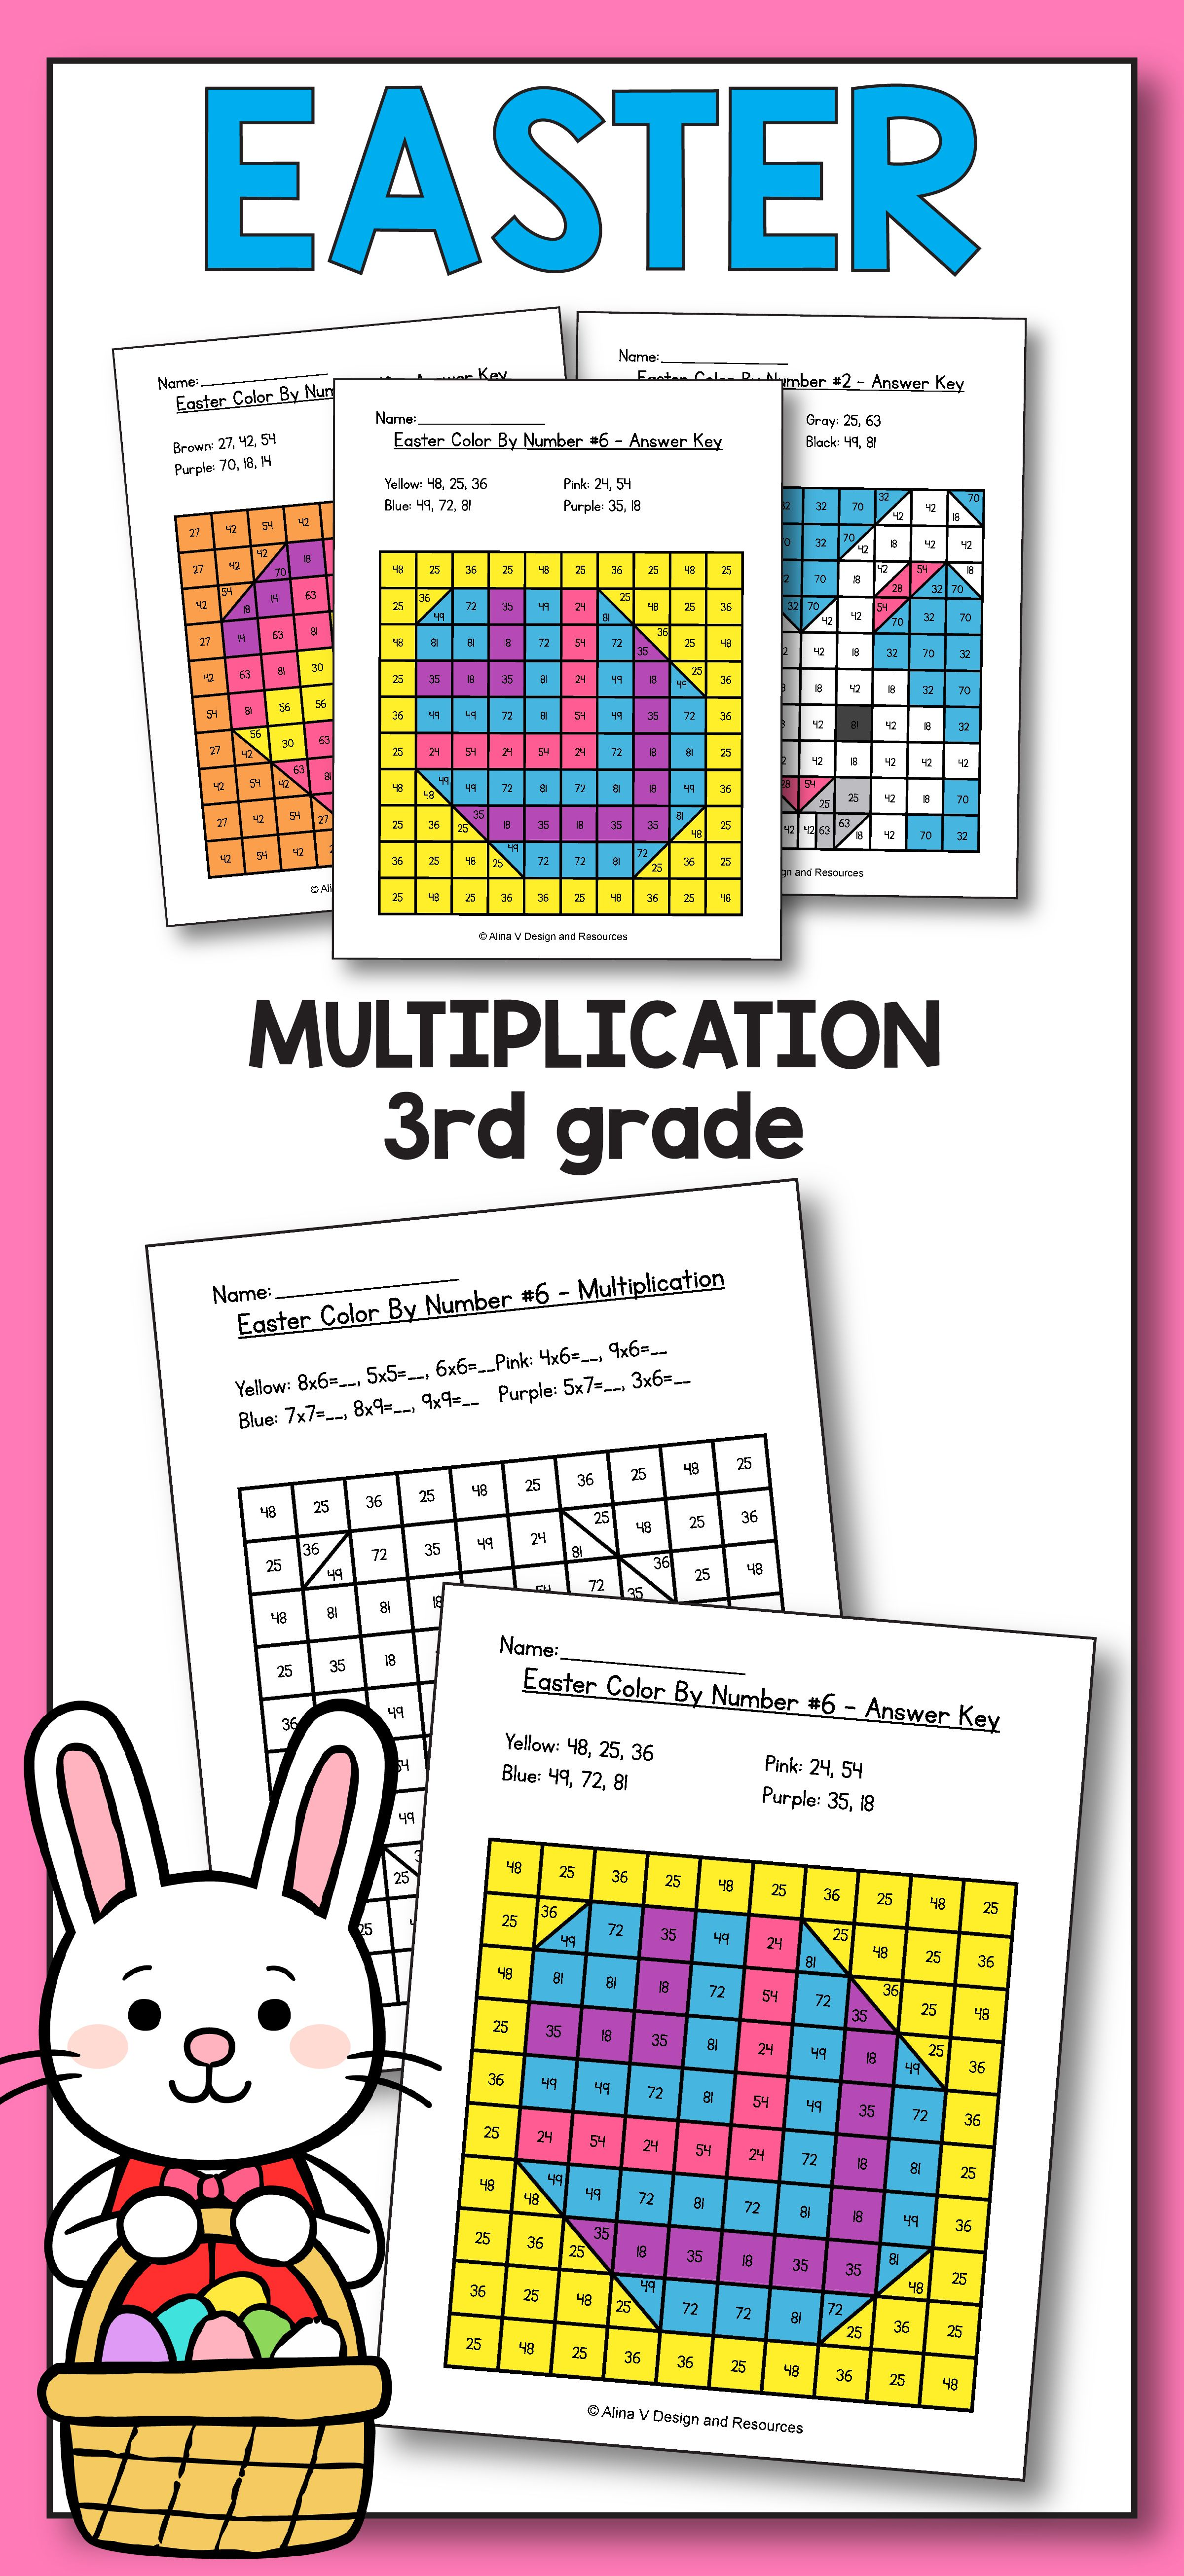 medium resolution of Easter Multiplication Math Worksheets for 3rd grade kids is fun with these  hundreds chart printables…   Easter math